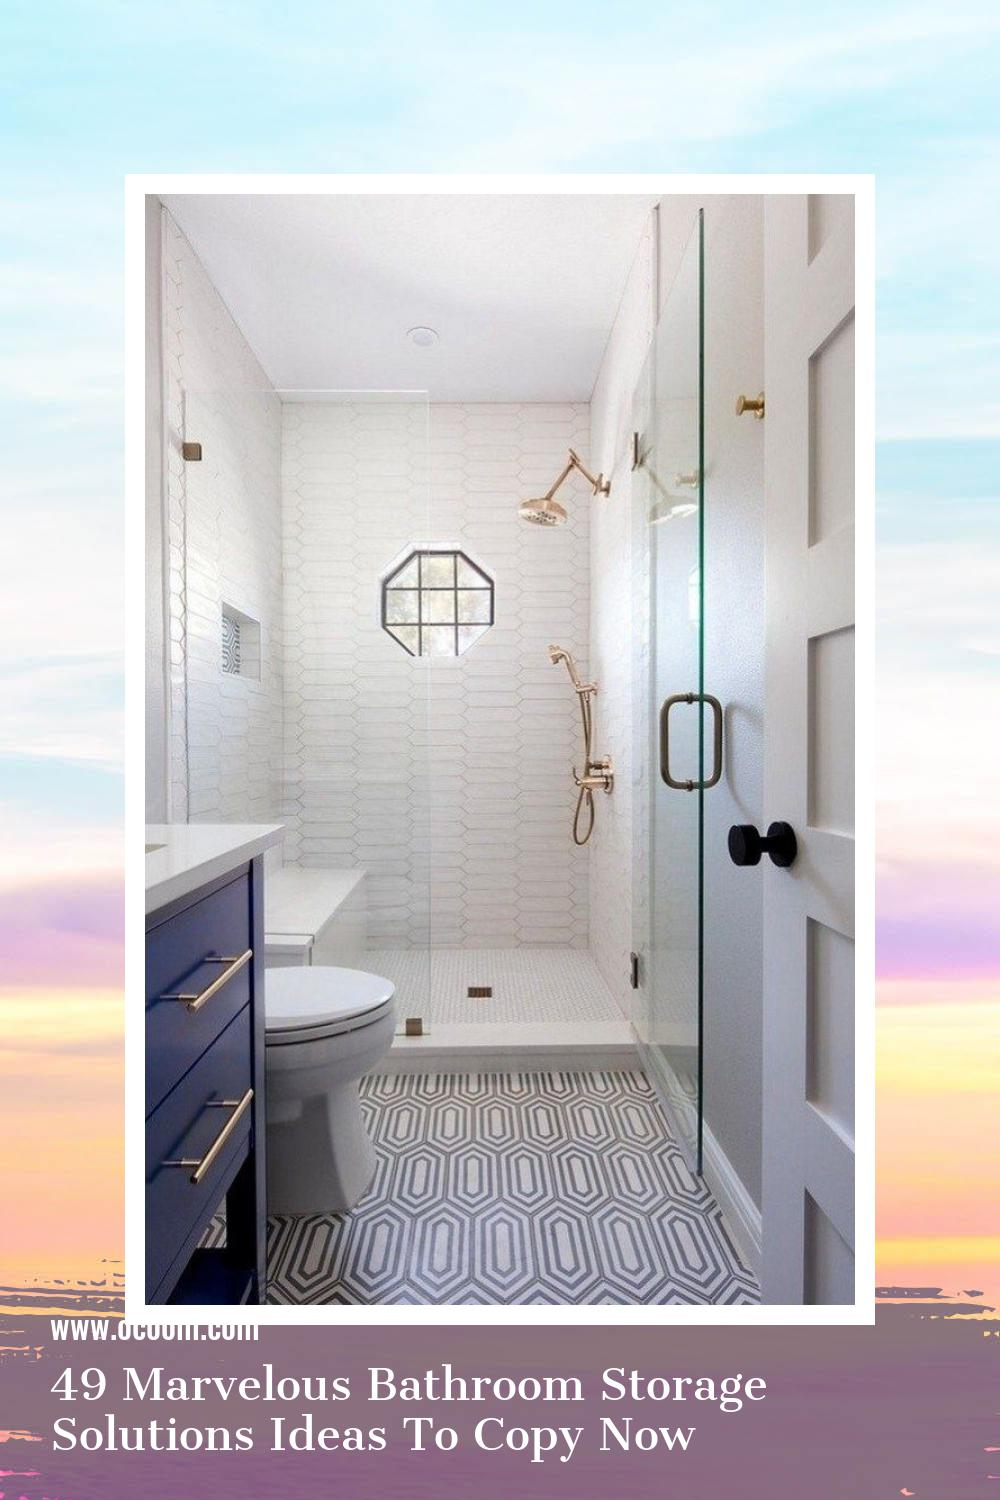 49 Marvelous Bathroom Storage Solutions Ideas To Copy Now 40